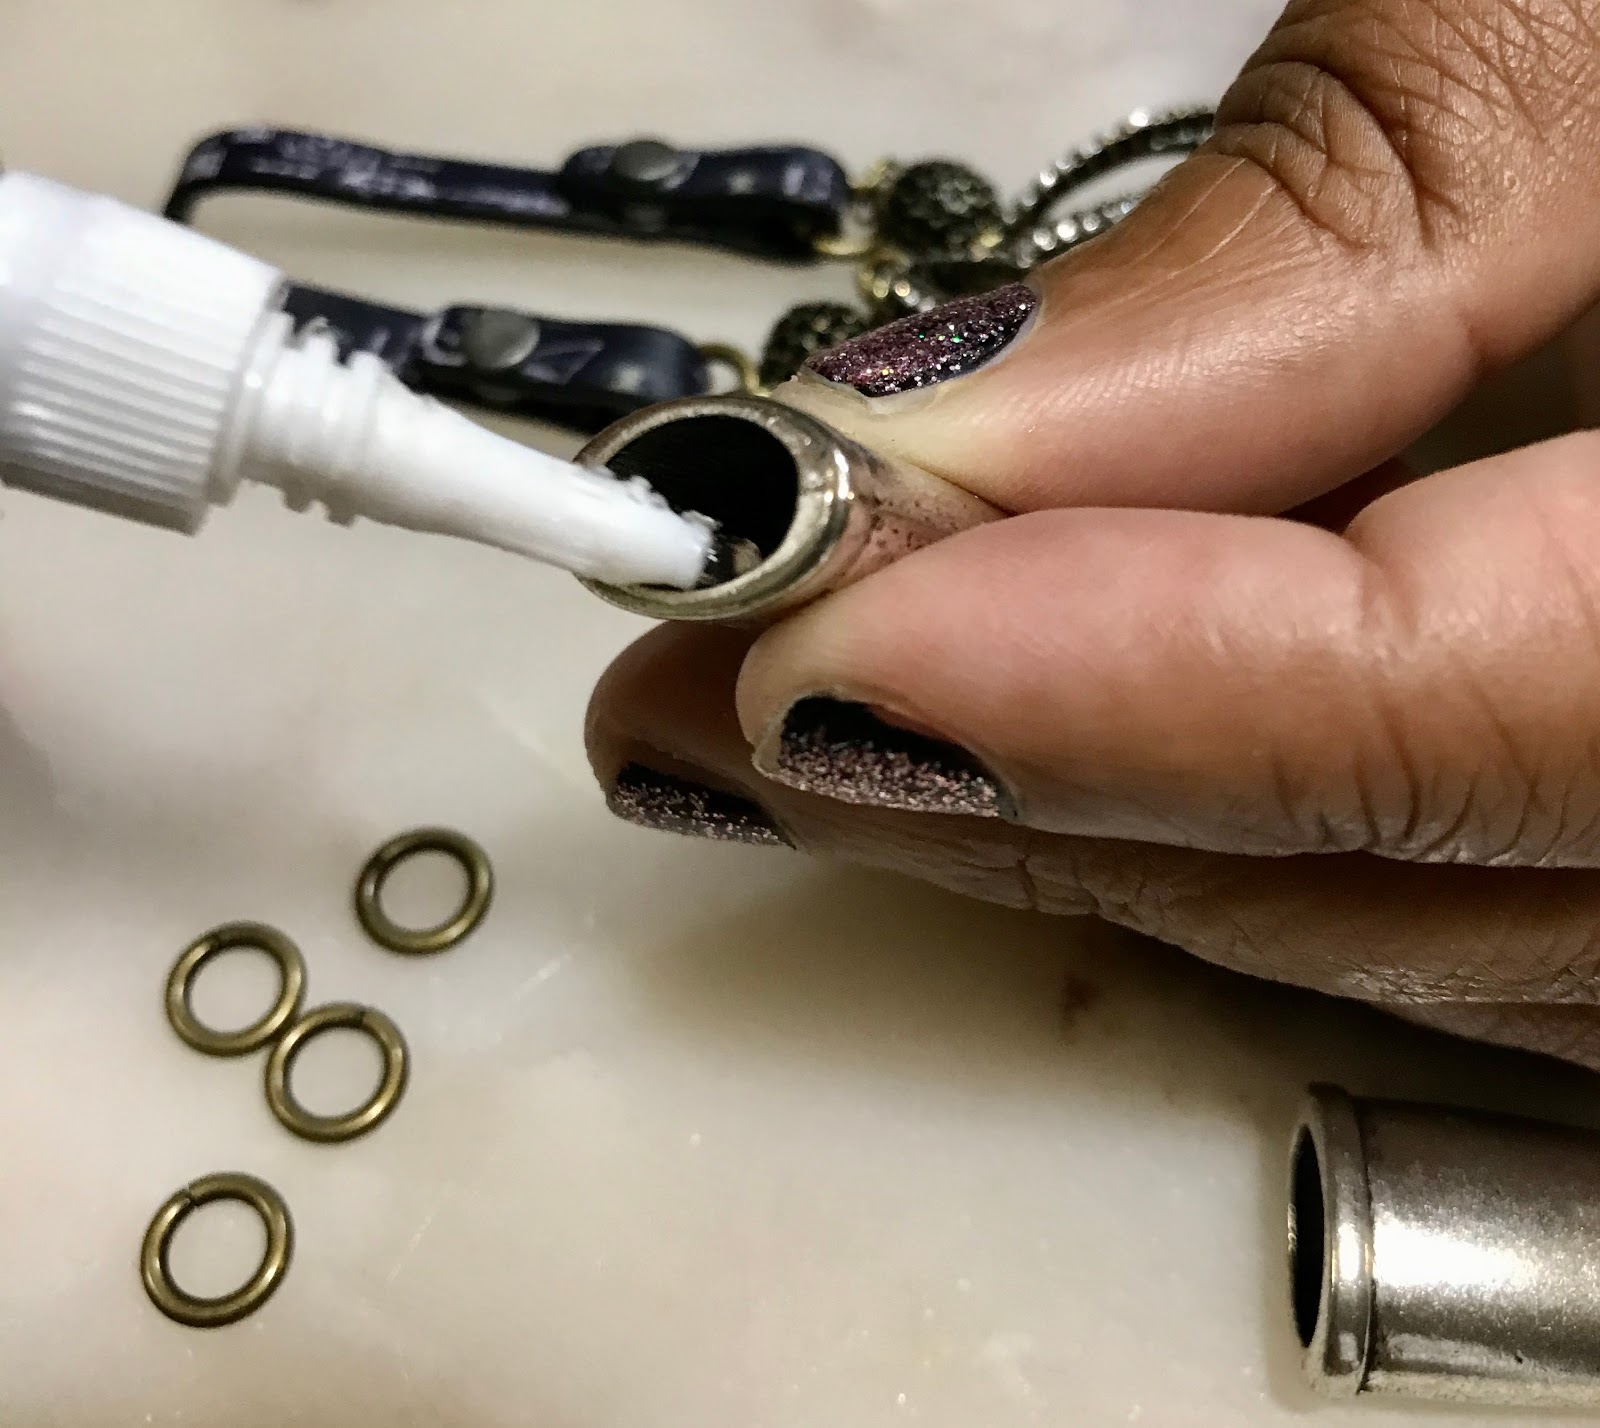 Image: Tangie Bell adding glue to end cap so earring pieces can stick together